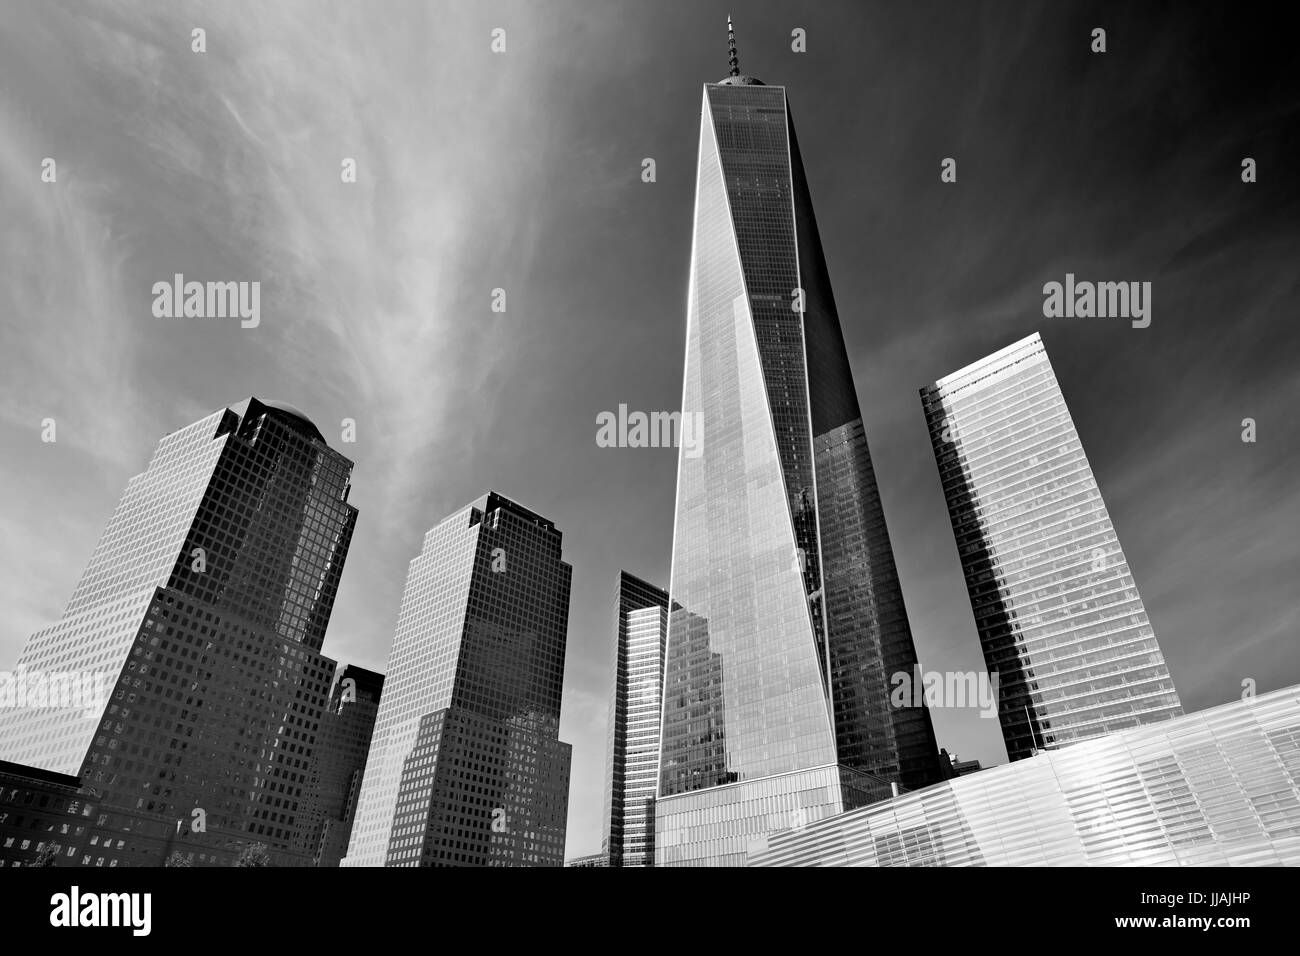 One World Trade Center skyscraper surrounded by glass buildings, black and white in a sunny day in New York - Stock Image